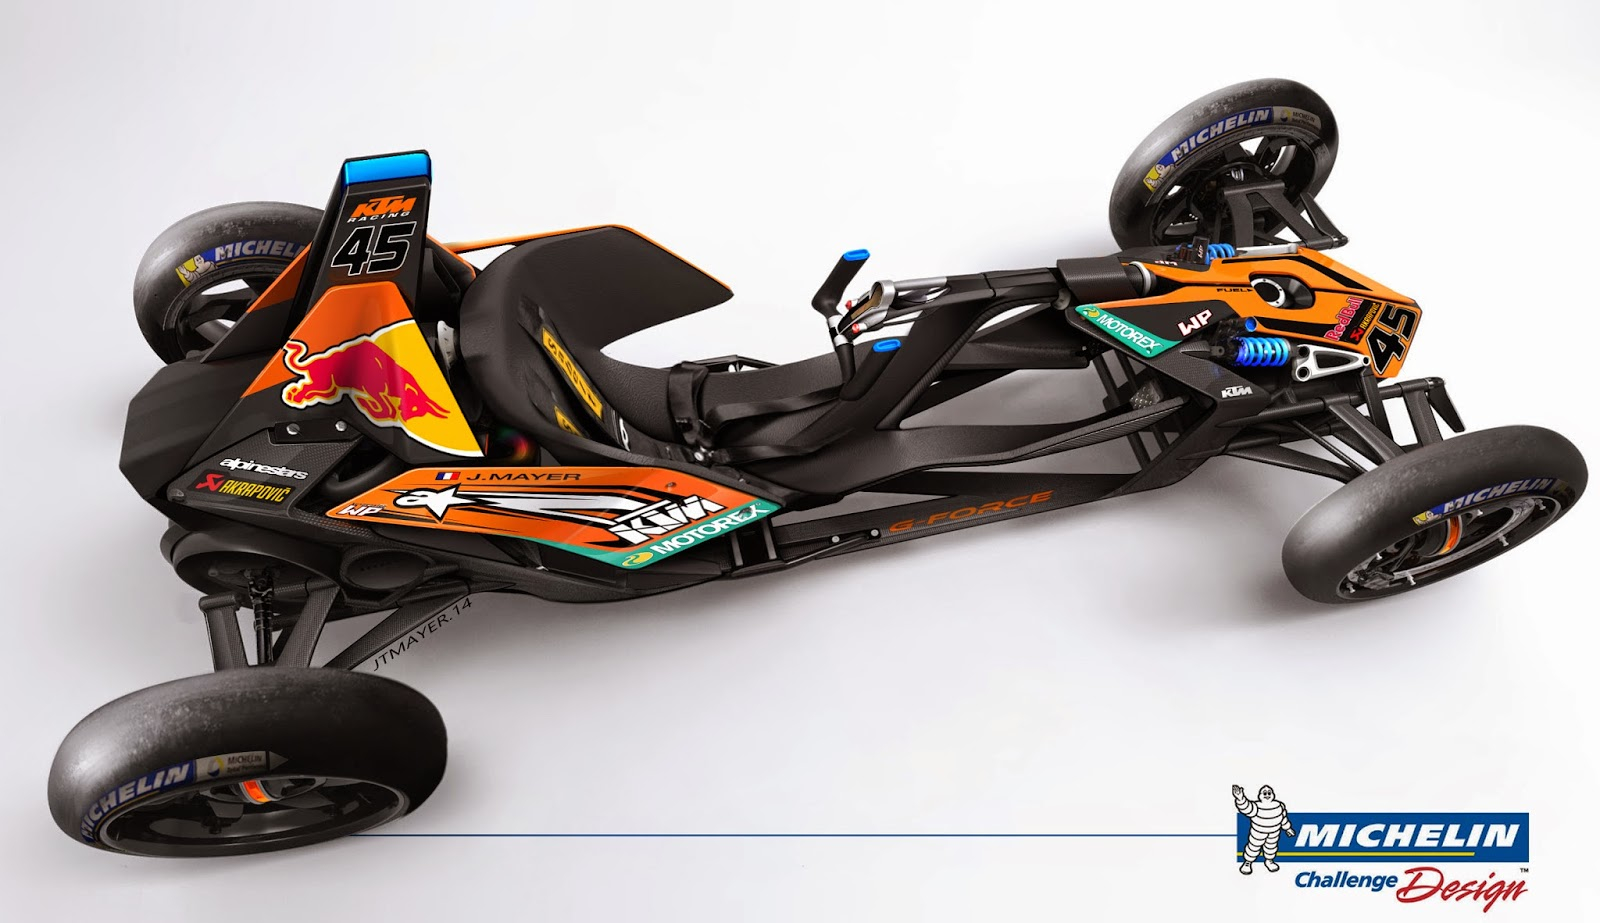 michelin kart GForce Concept by Jean Thomas Mayer, France | Michelin Challenge  michelin kart